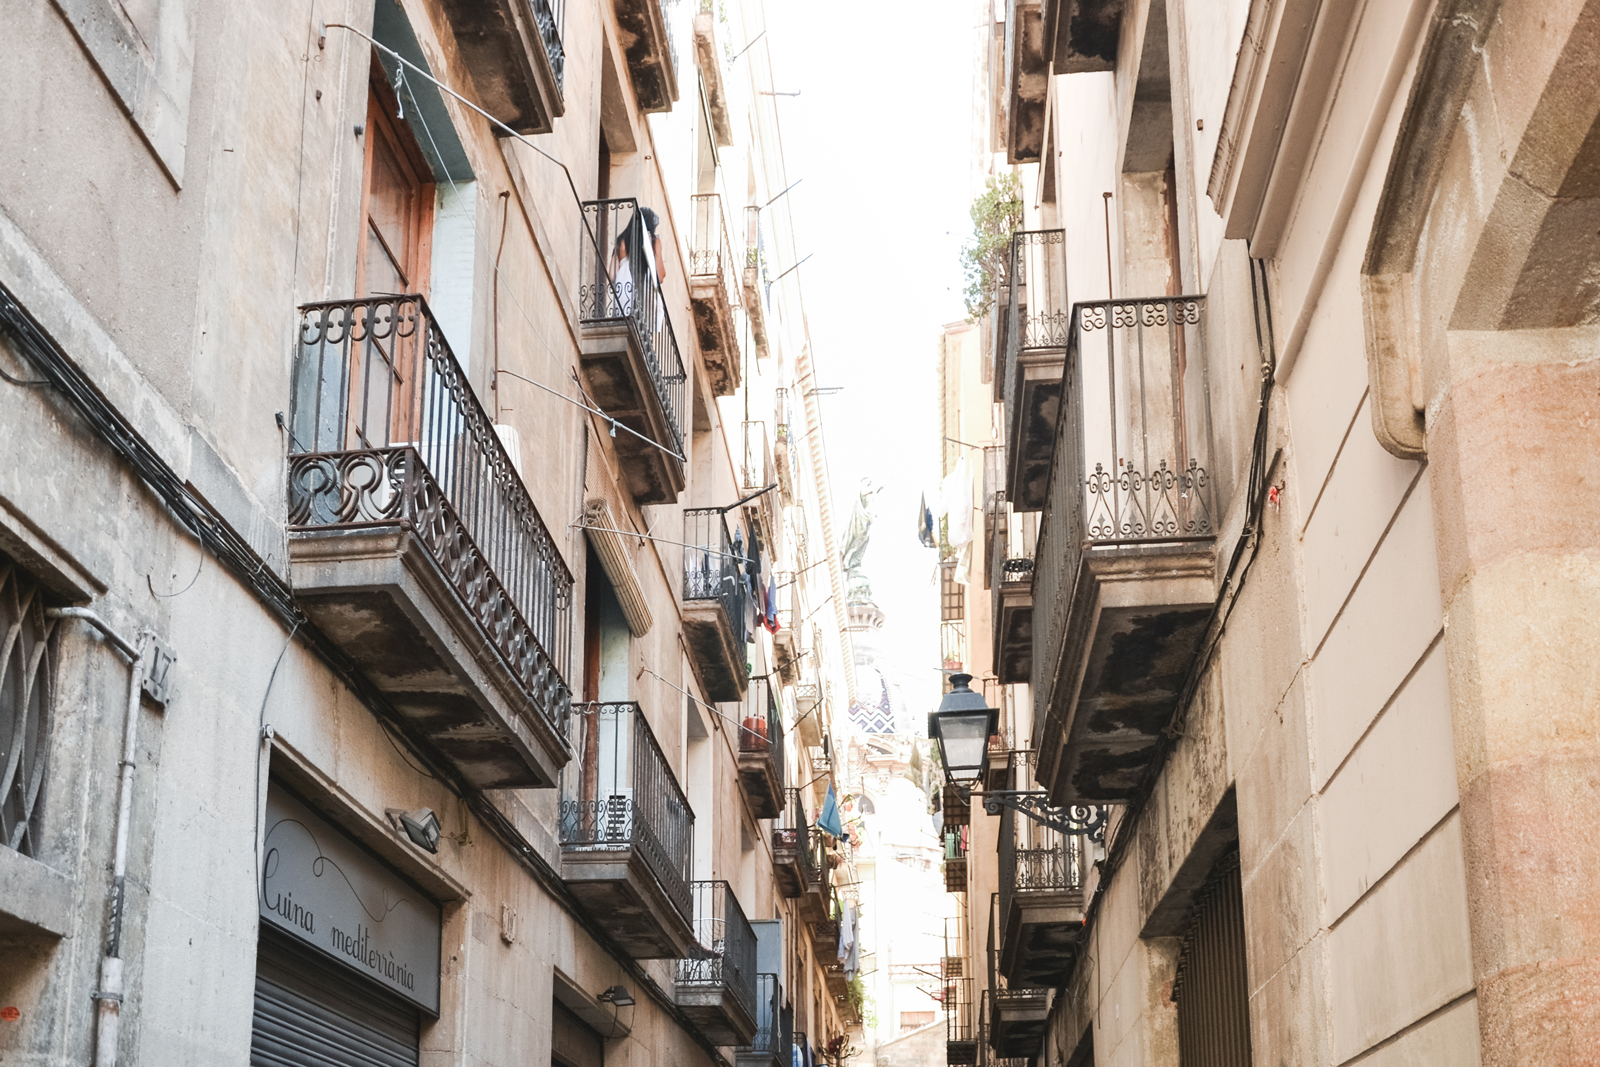 Bcn-Architecture--Barri-Gotic-by-epepa